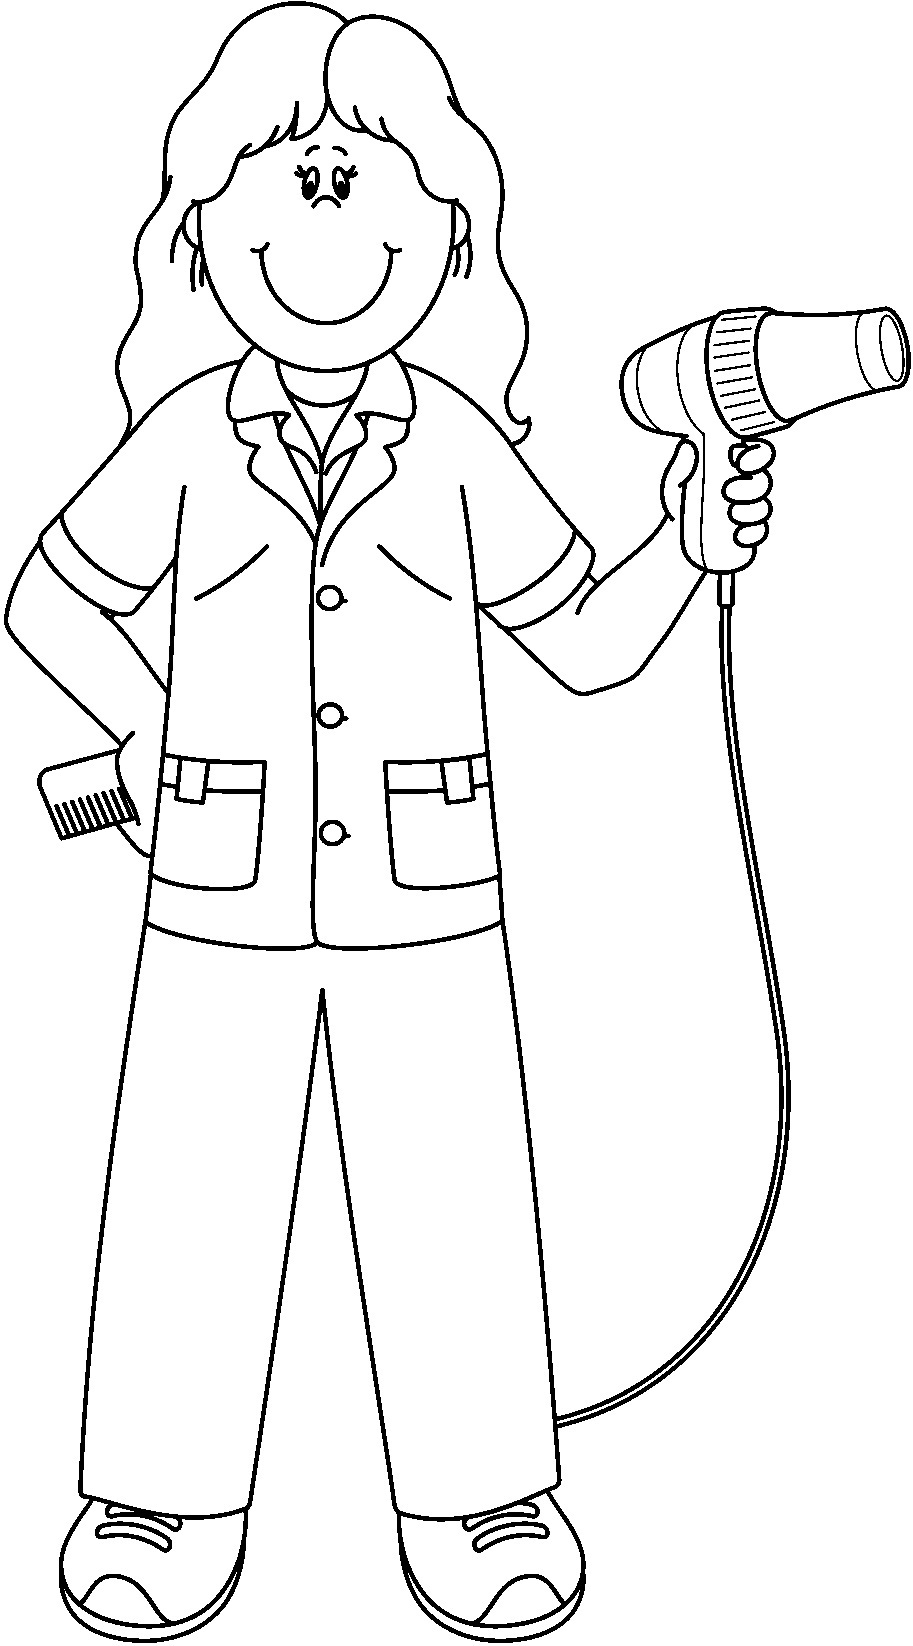 It is a picture of Stupendous community helpers coloring page